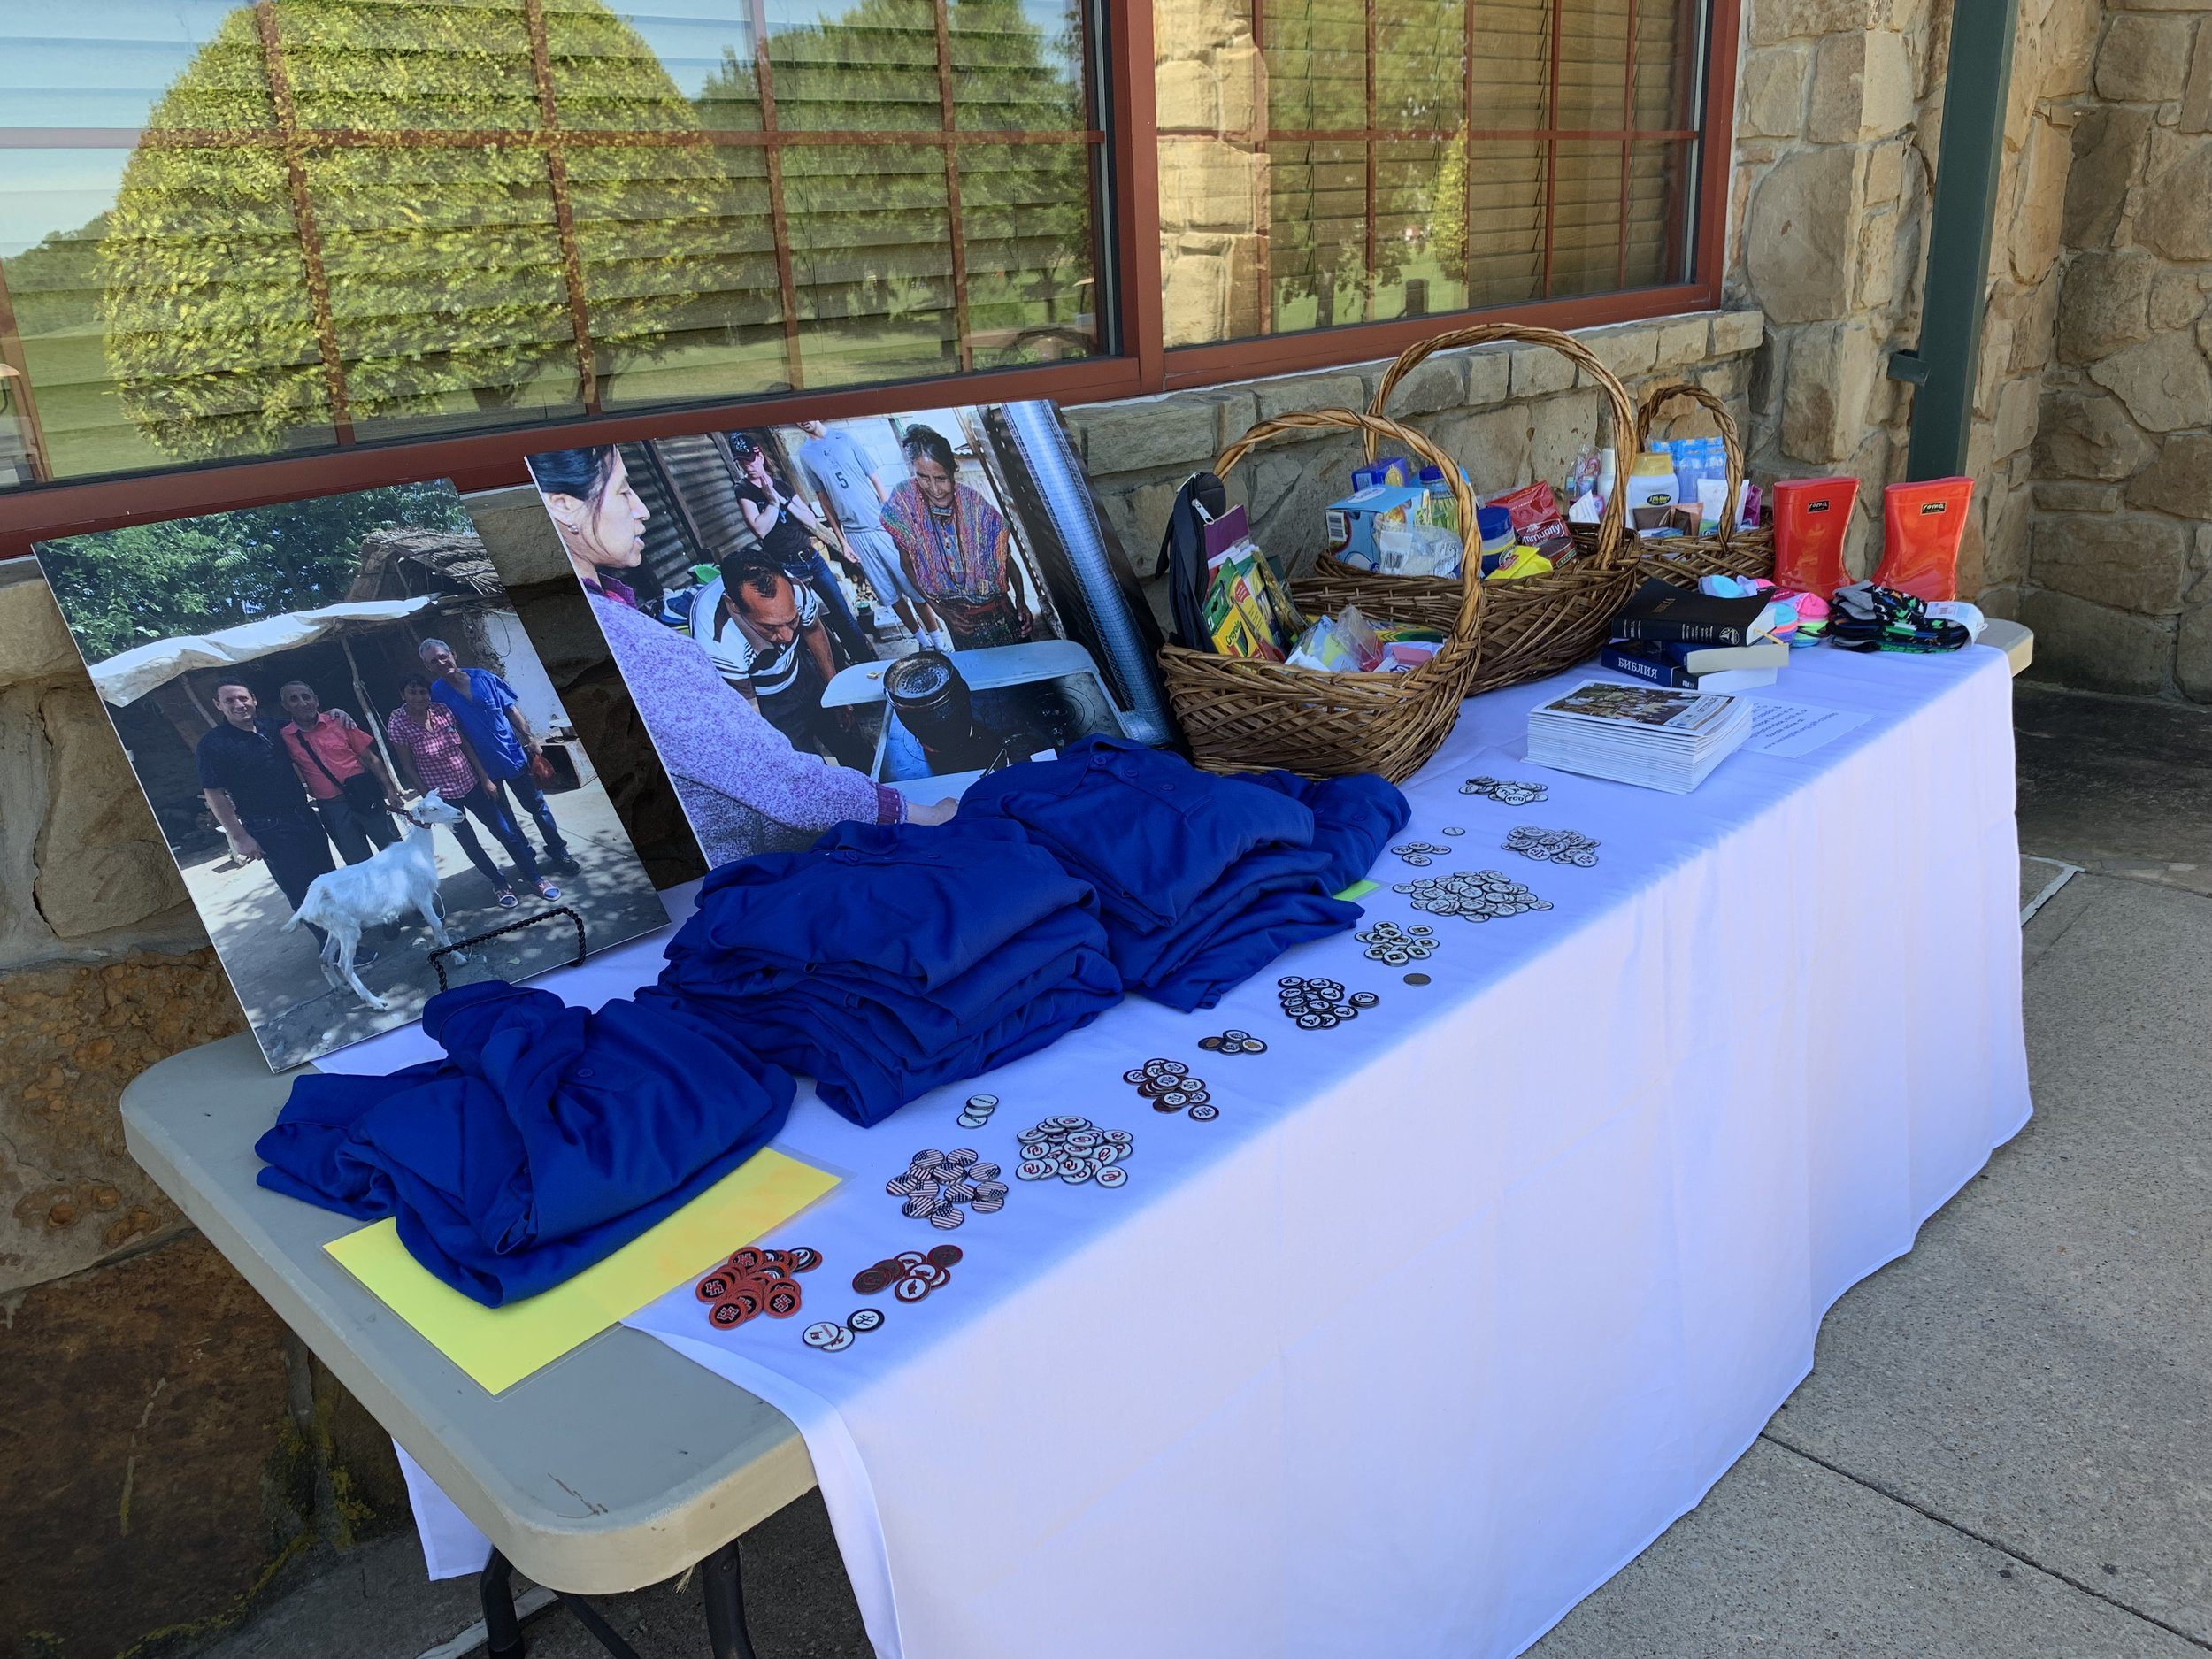 Photo Apr 26, 11 06 57 AM.jpg